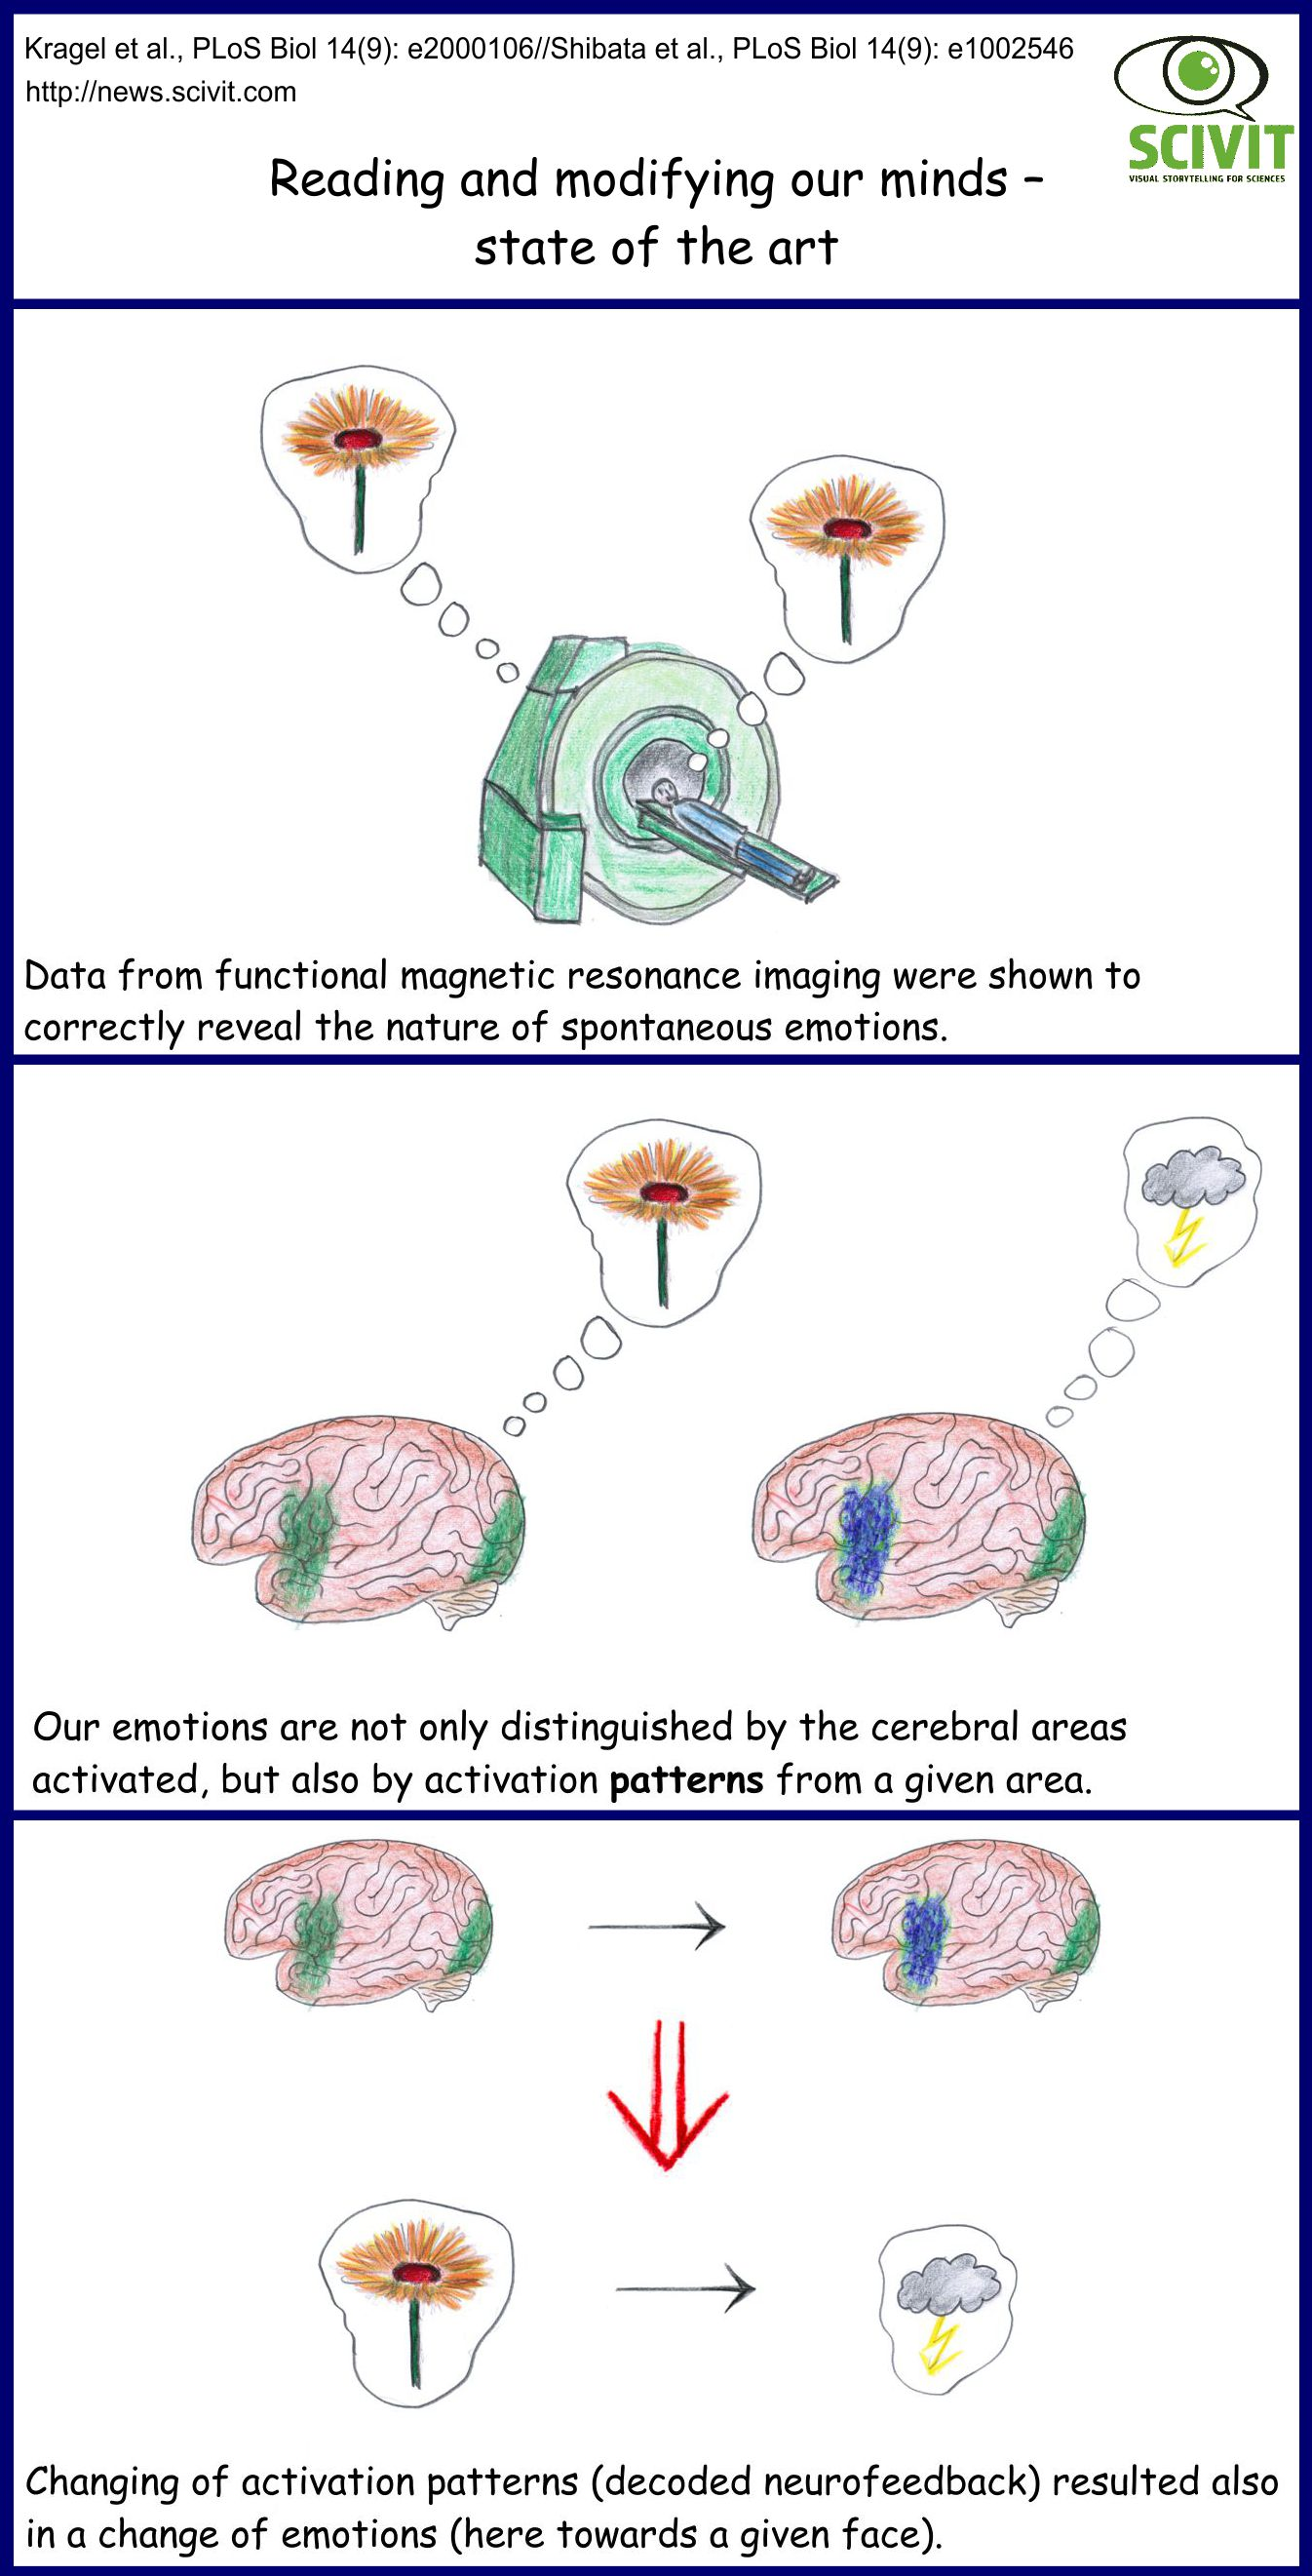 Reading and modifying our minds – state of the art